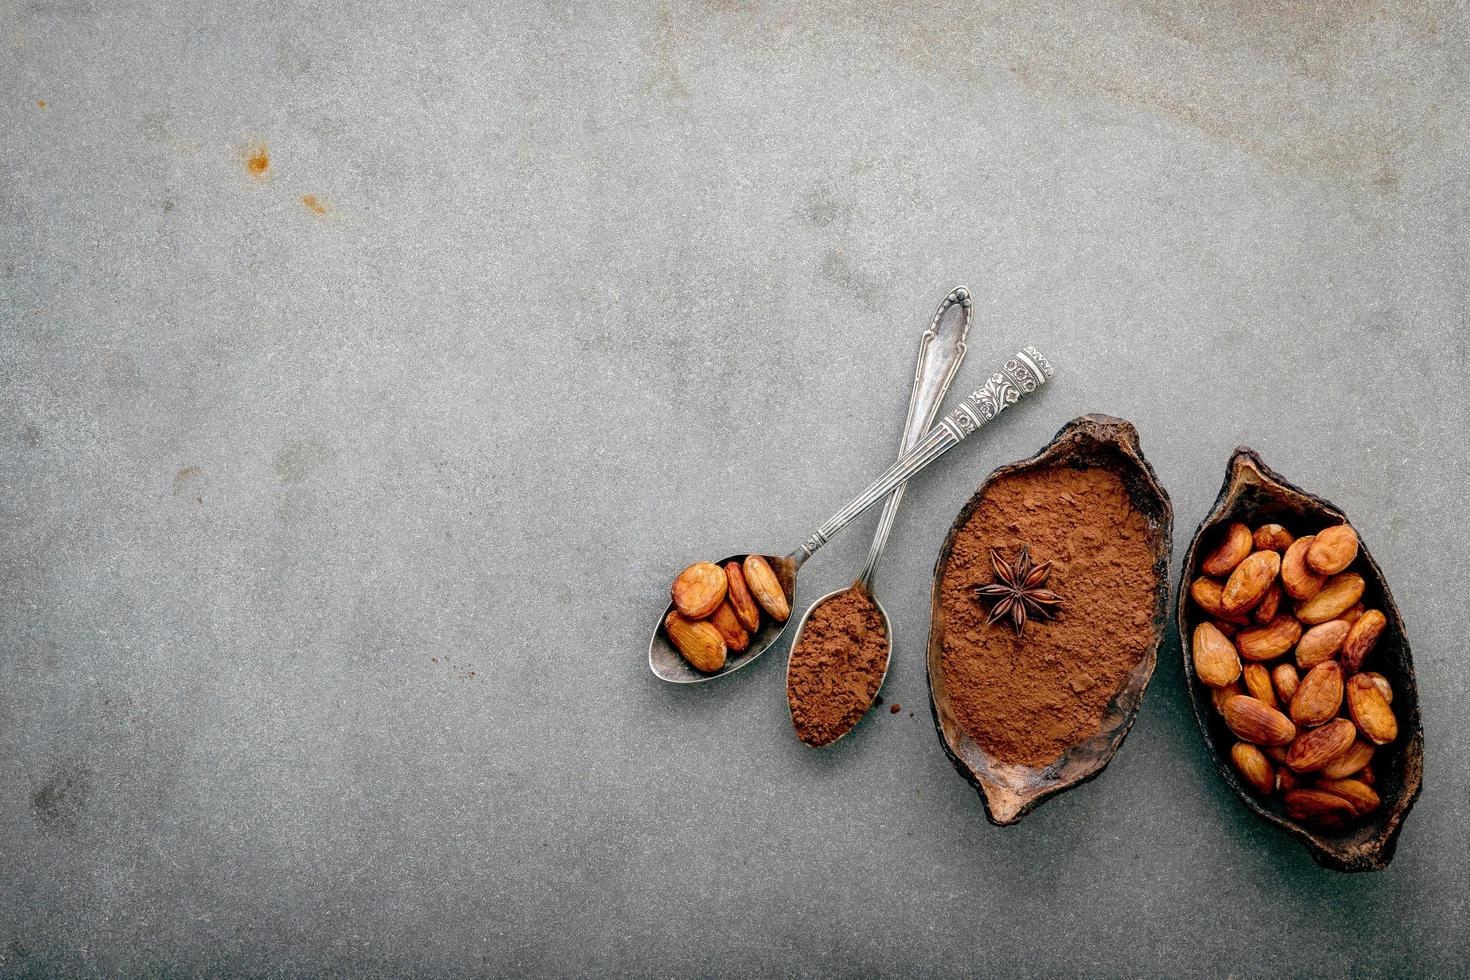 Cocoa powder and cacao beans on concrete photo